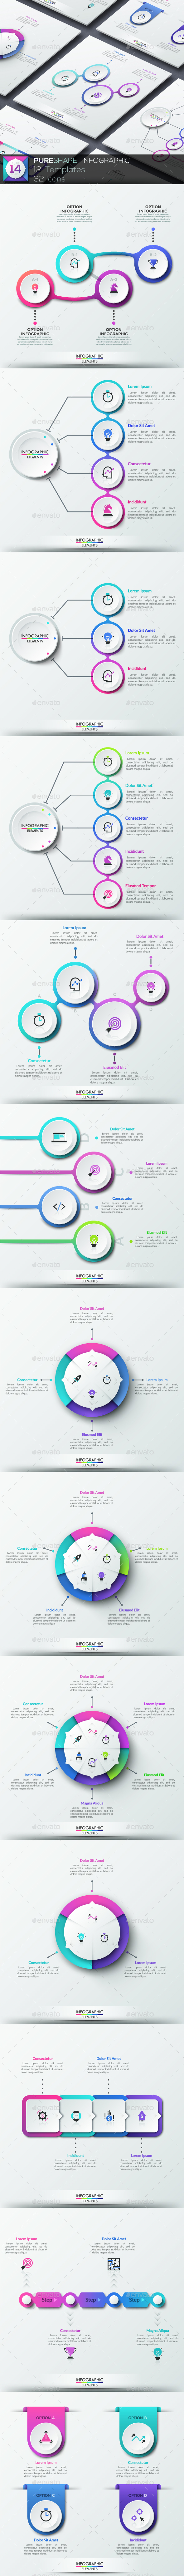 GraphicRiver Pure Shape Infographic Set 14 20852765